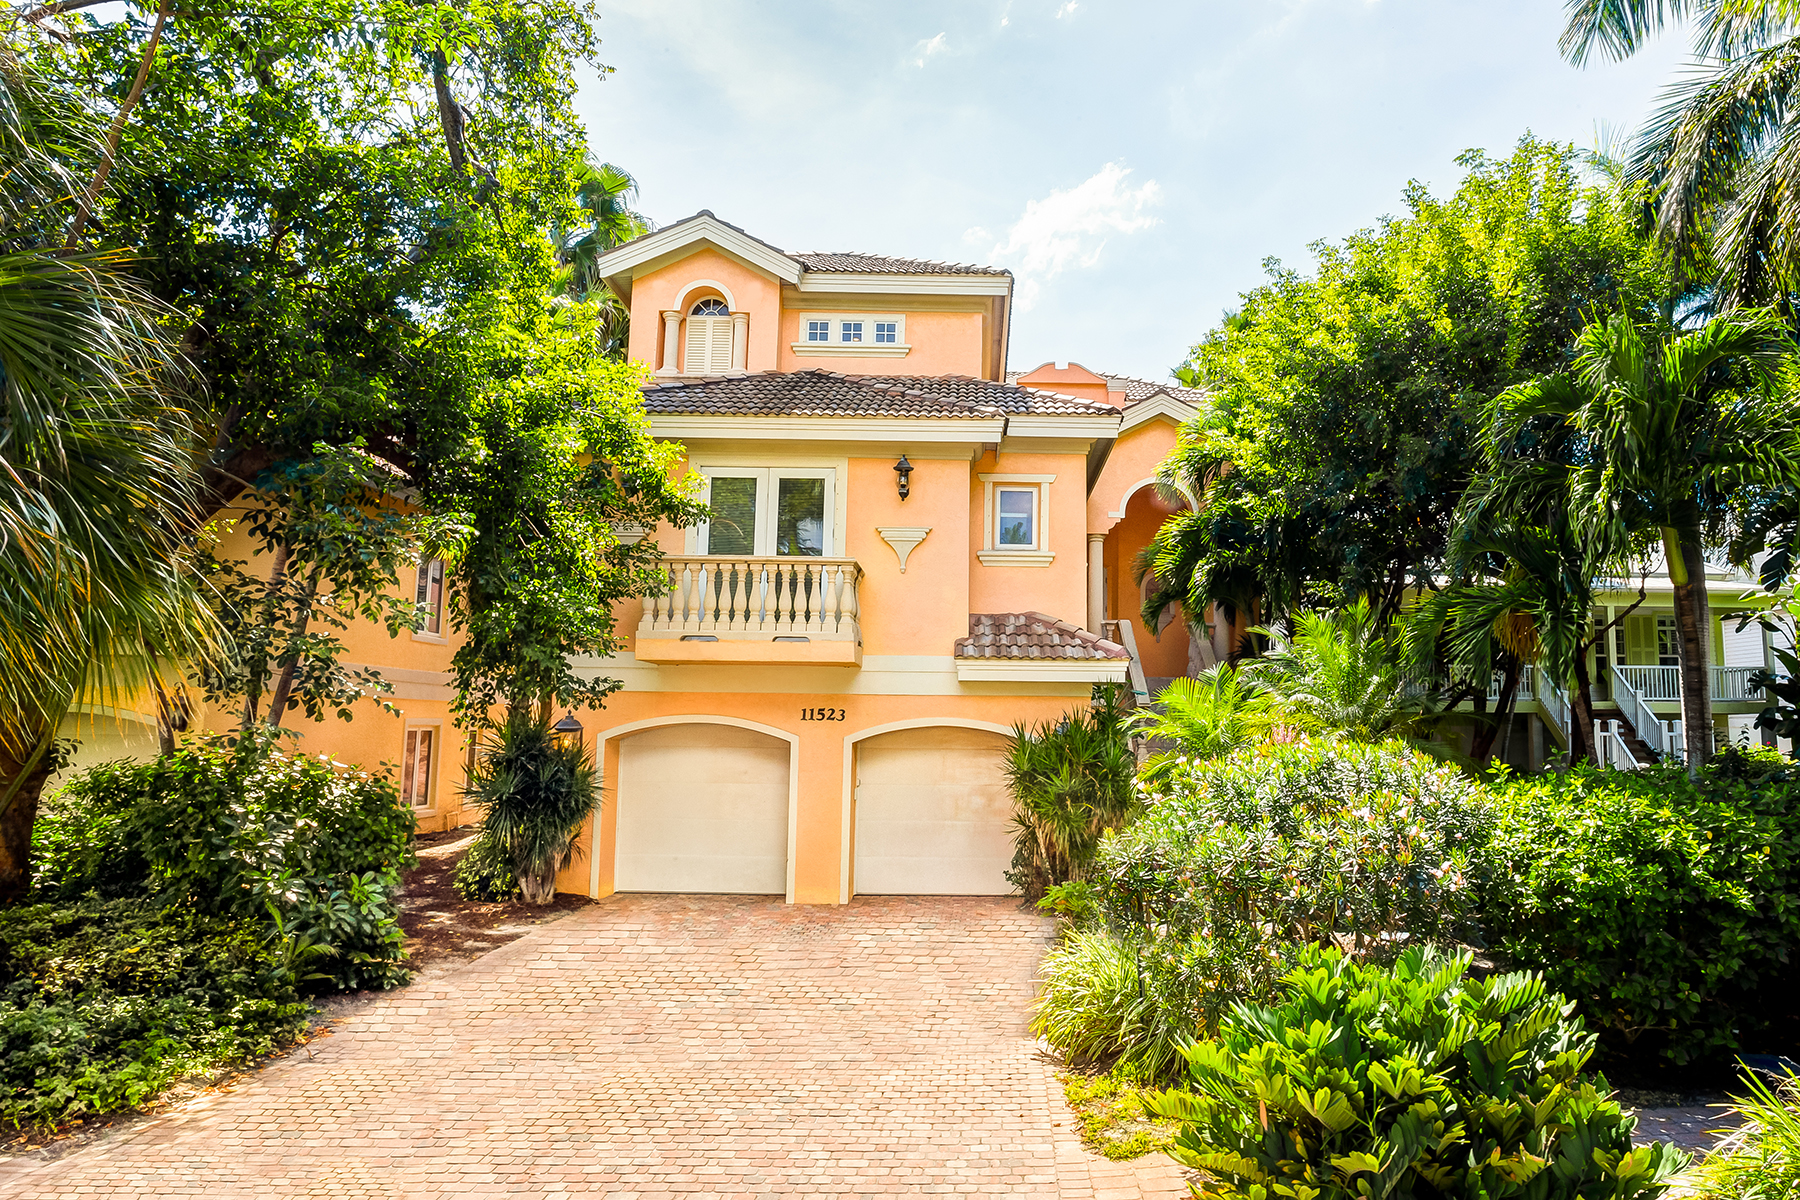 Single Family Home for Sale at CAPTIVA 11523 Andy Rosse Ln, Captiva, Florida 33924 United States